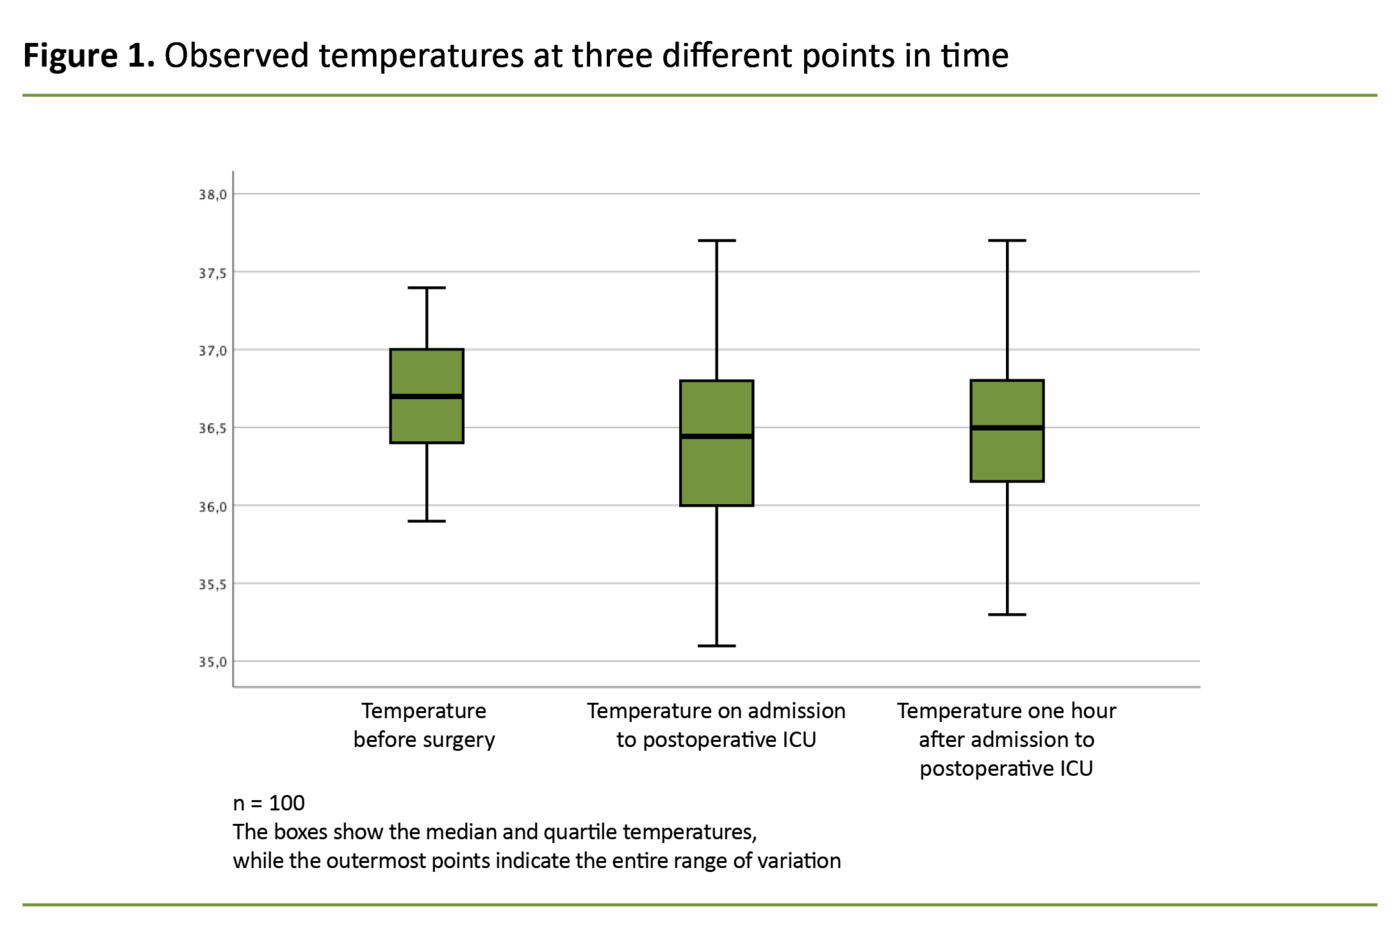 Figure 1. Observed temperatures at three different points in time